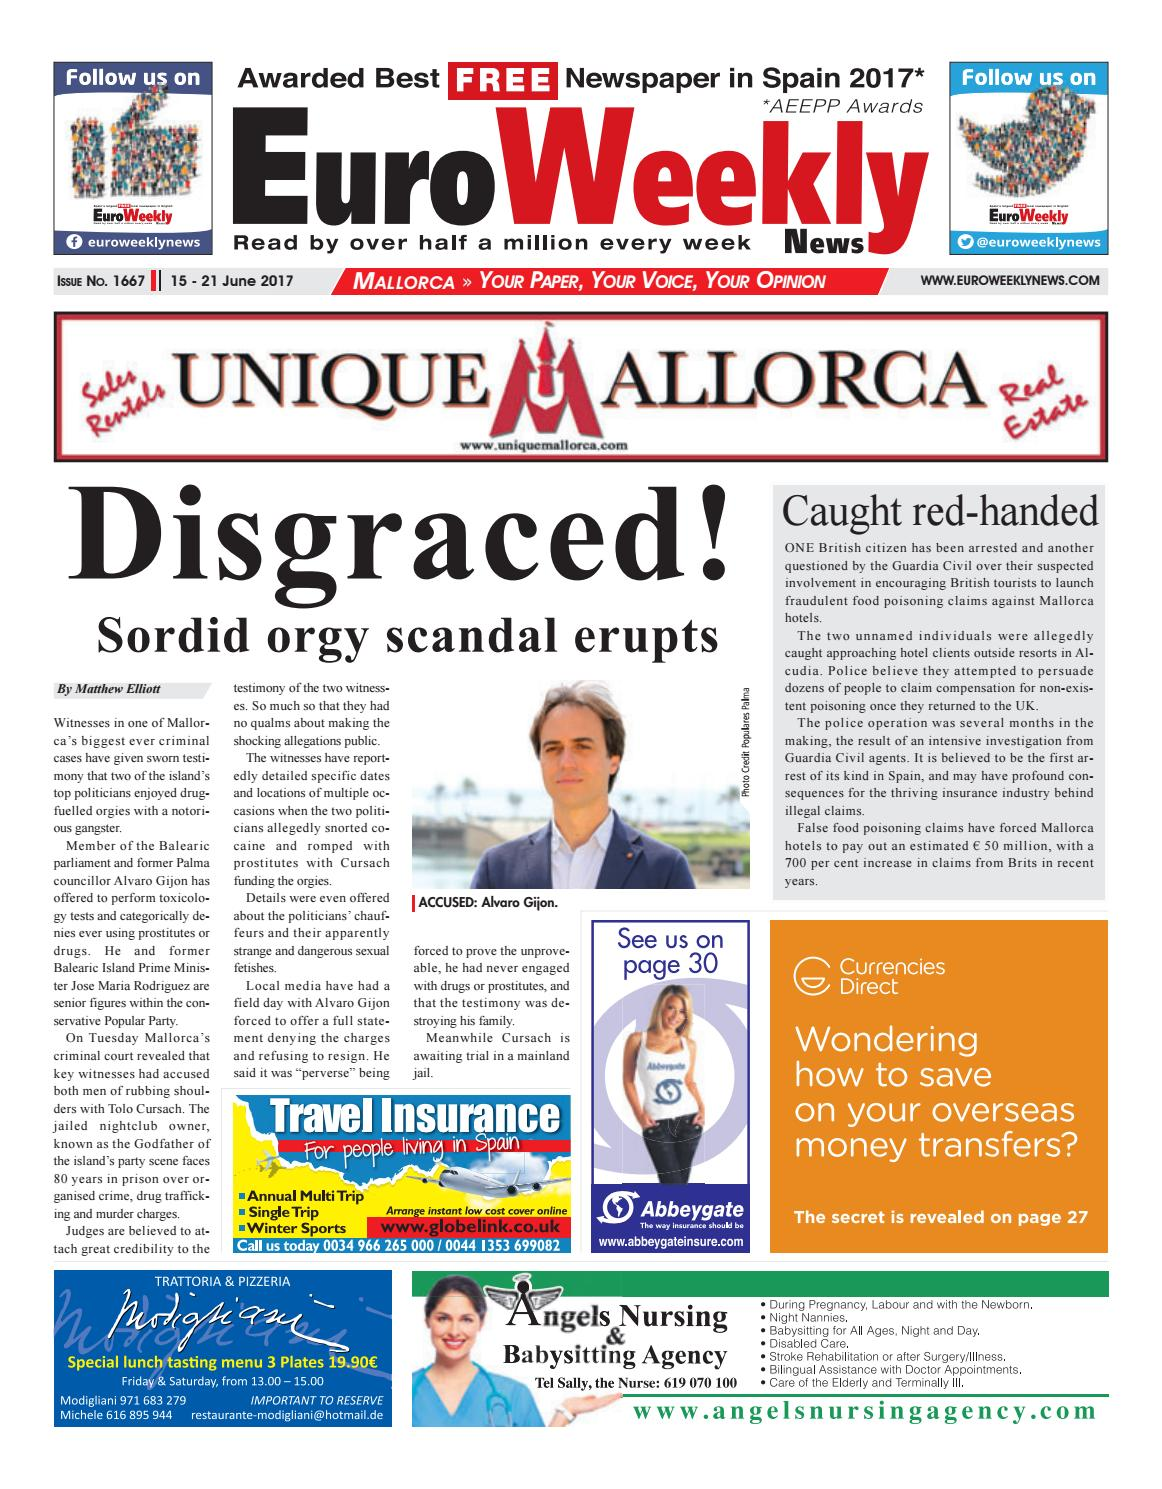 Euro Weekly News - Mallorca 15 - 21 June 2017 Issue 1667 by Euro Weekly  News Media S.A. - issuu 3056856e312